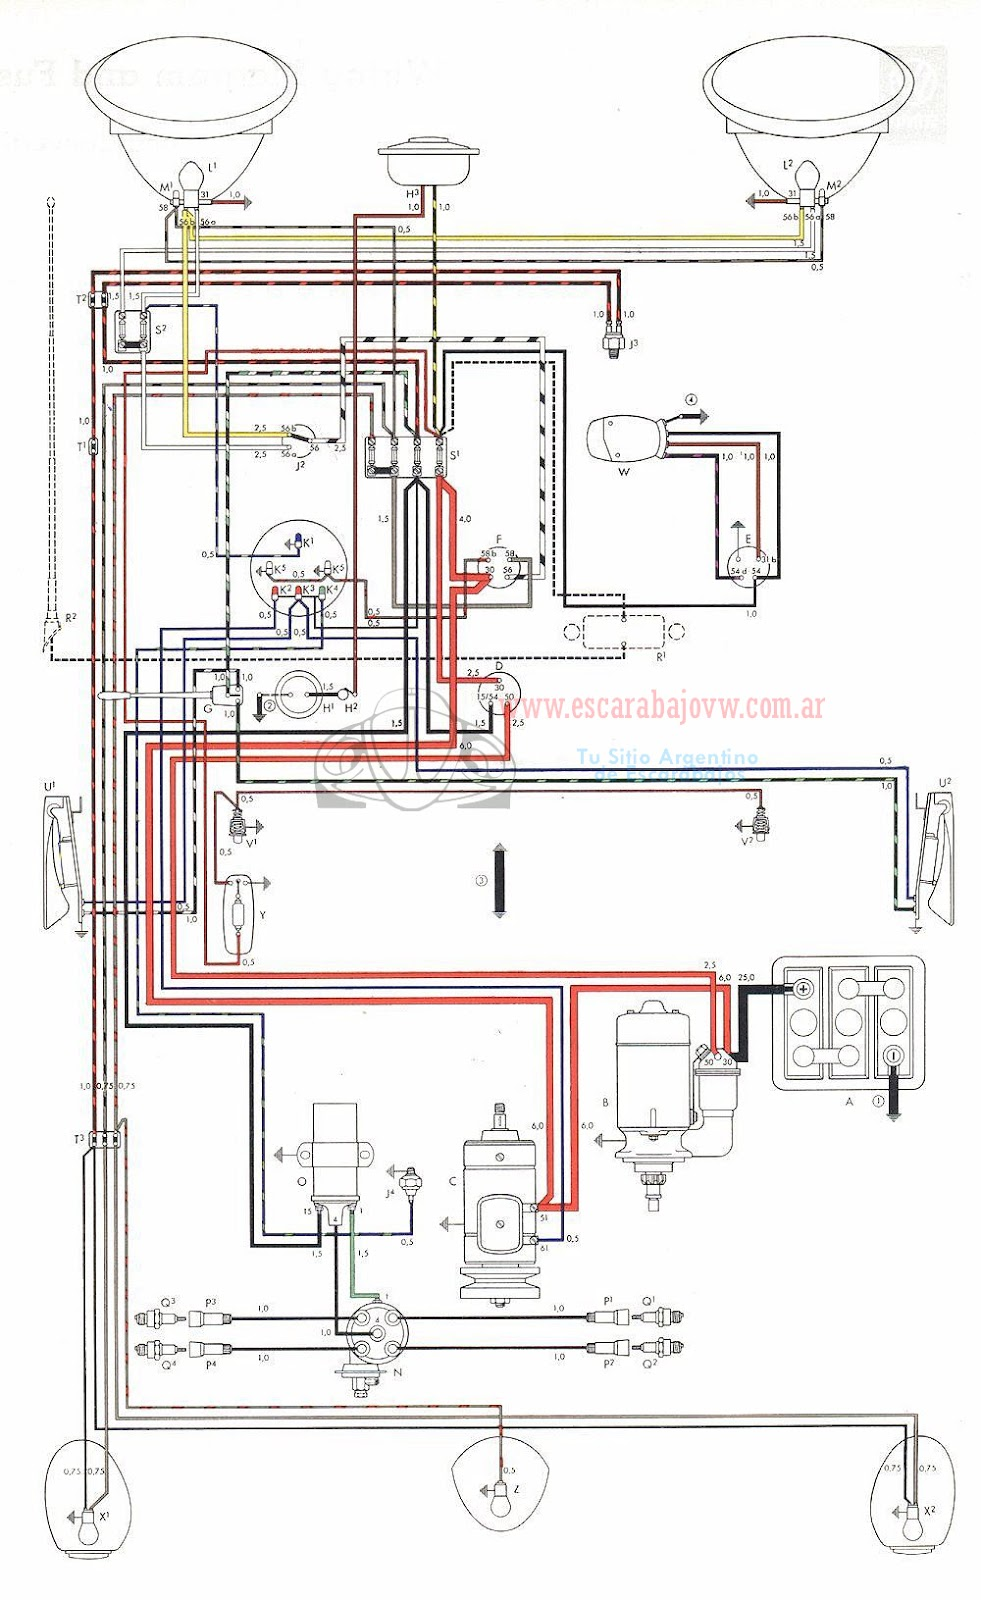 2012 chevrolet sonic wiring diagram 2014 chevrolet 1998 chevy malibu engine diagram 2013 chevy malibu engine [ 981 x 1600 Pixel ]